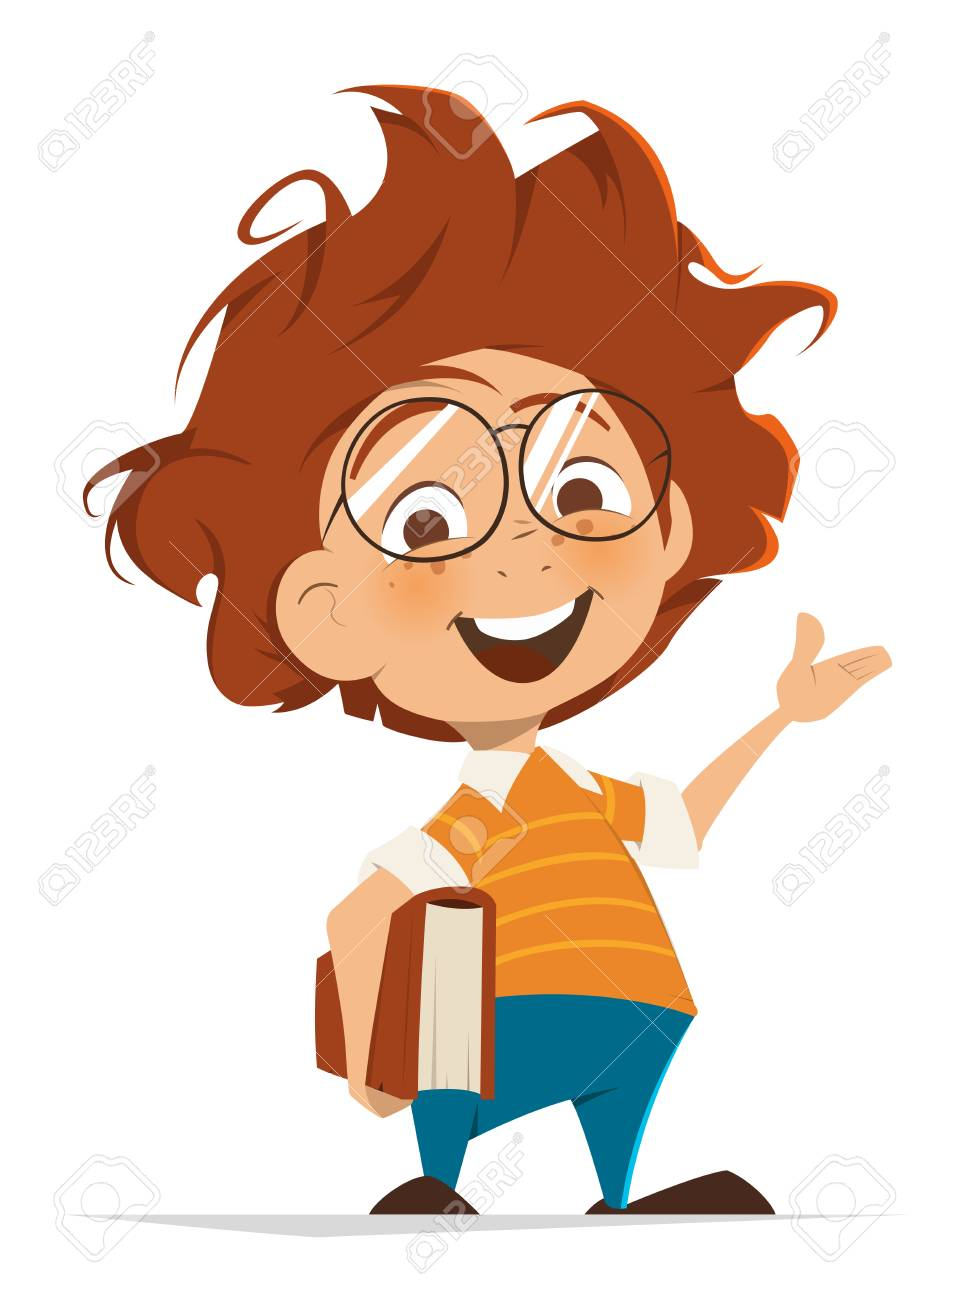 Vector character illustration of School kid with book and glasses pointing hand - 69360223